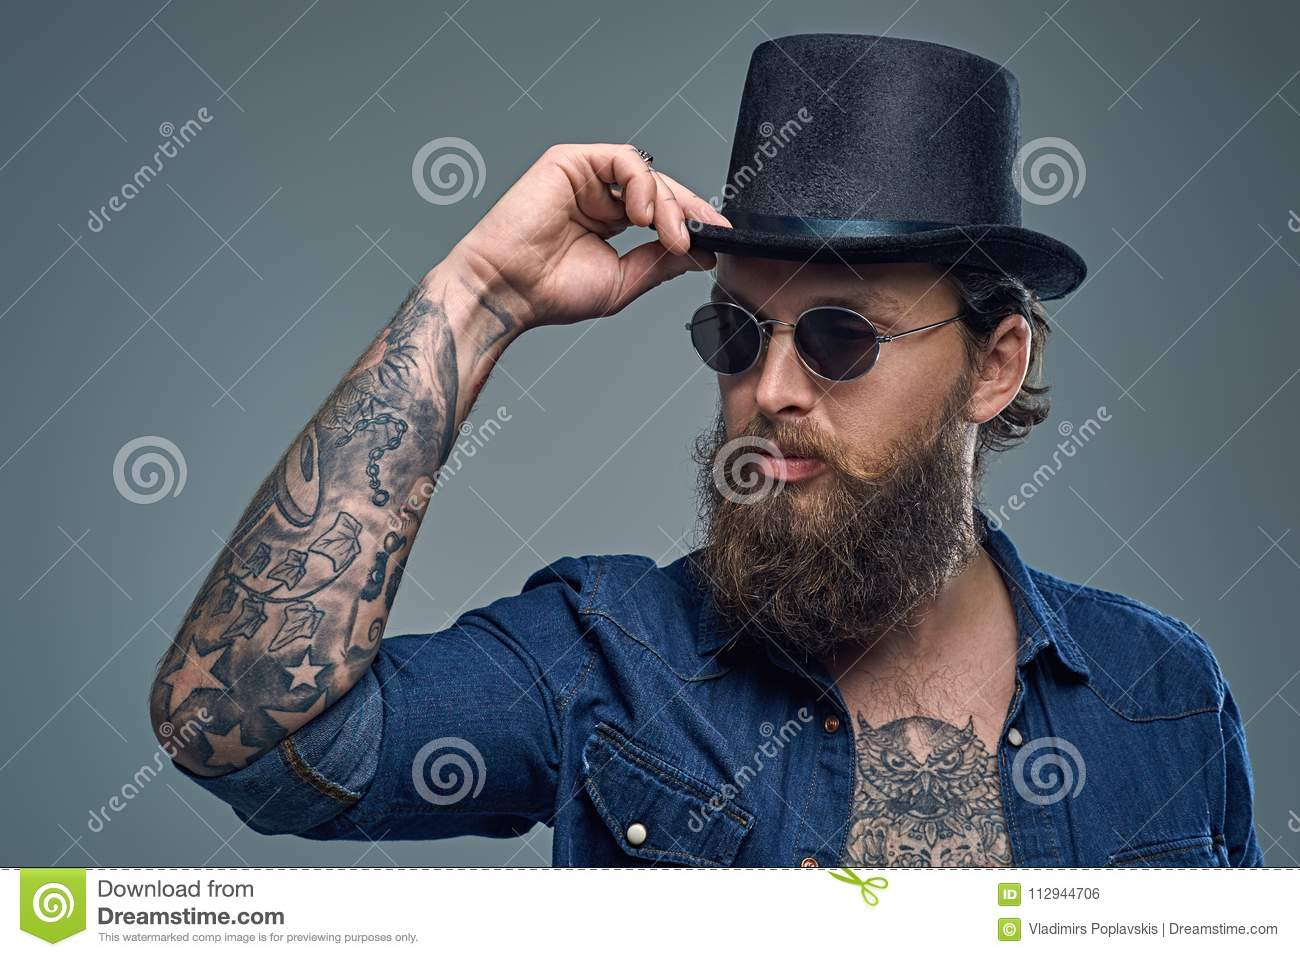 Tattooed Bearded Male In Sunglasses And Top Hat. Stock Photo - Image ... 97ac90a1008